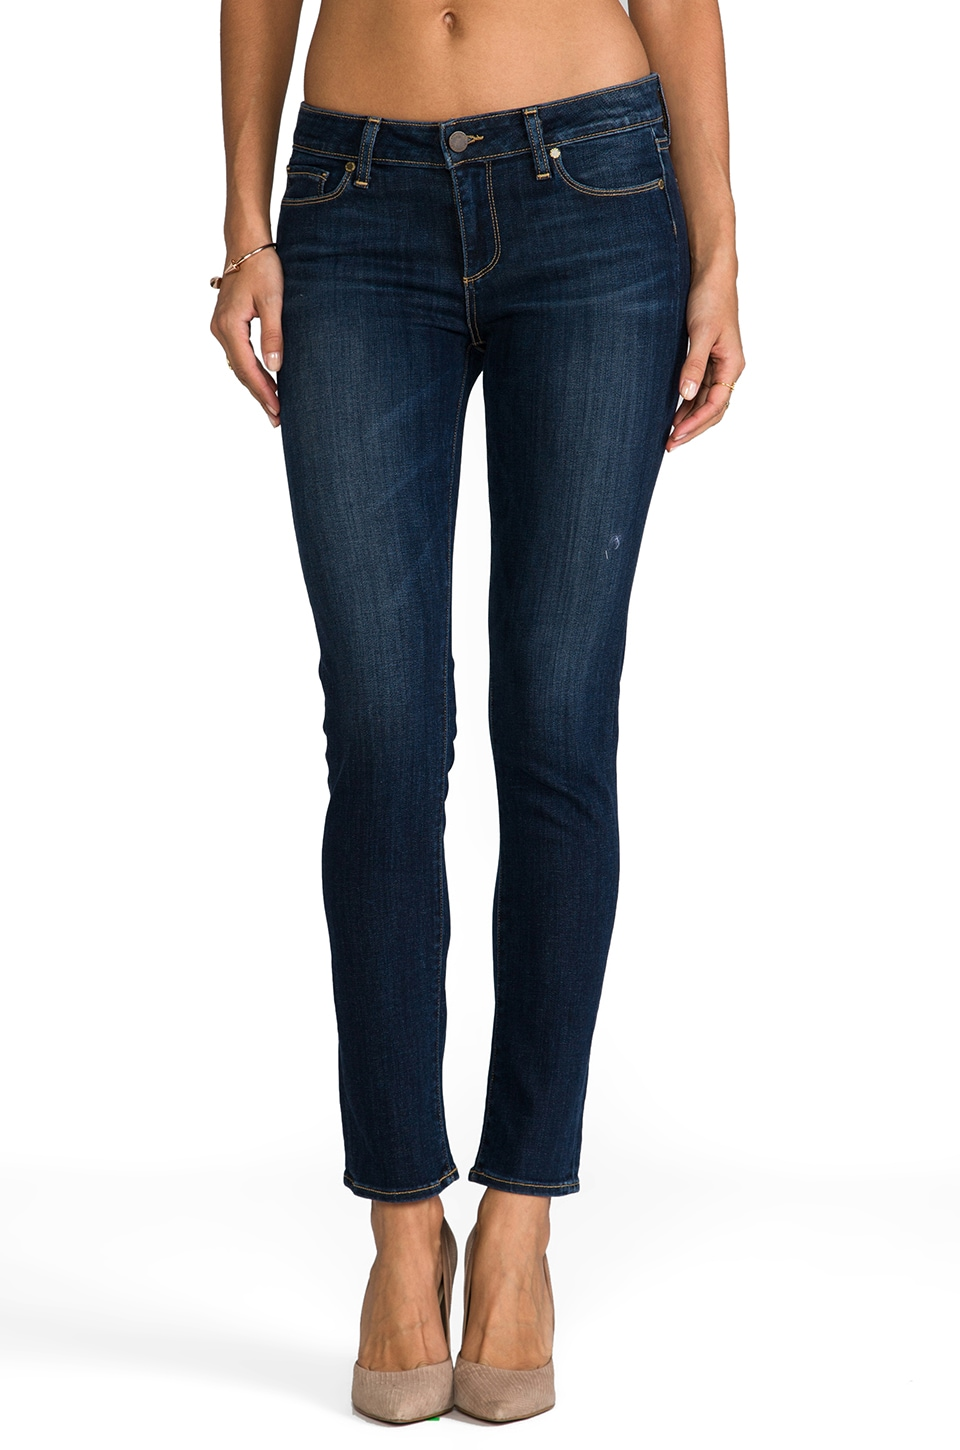 PAIGE Denim Skyline Ankle Peg in Galileo